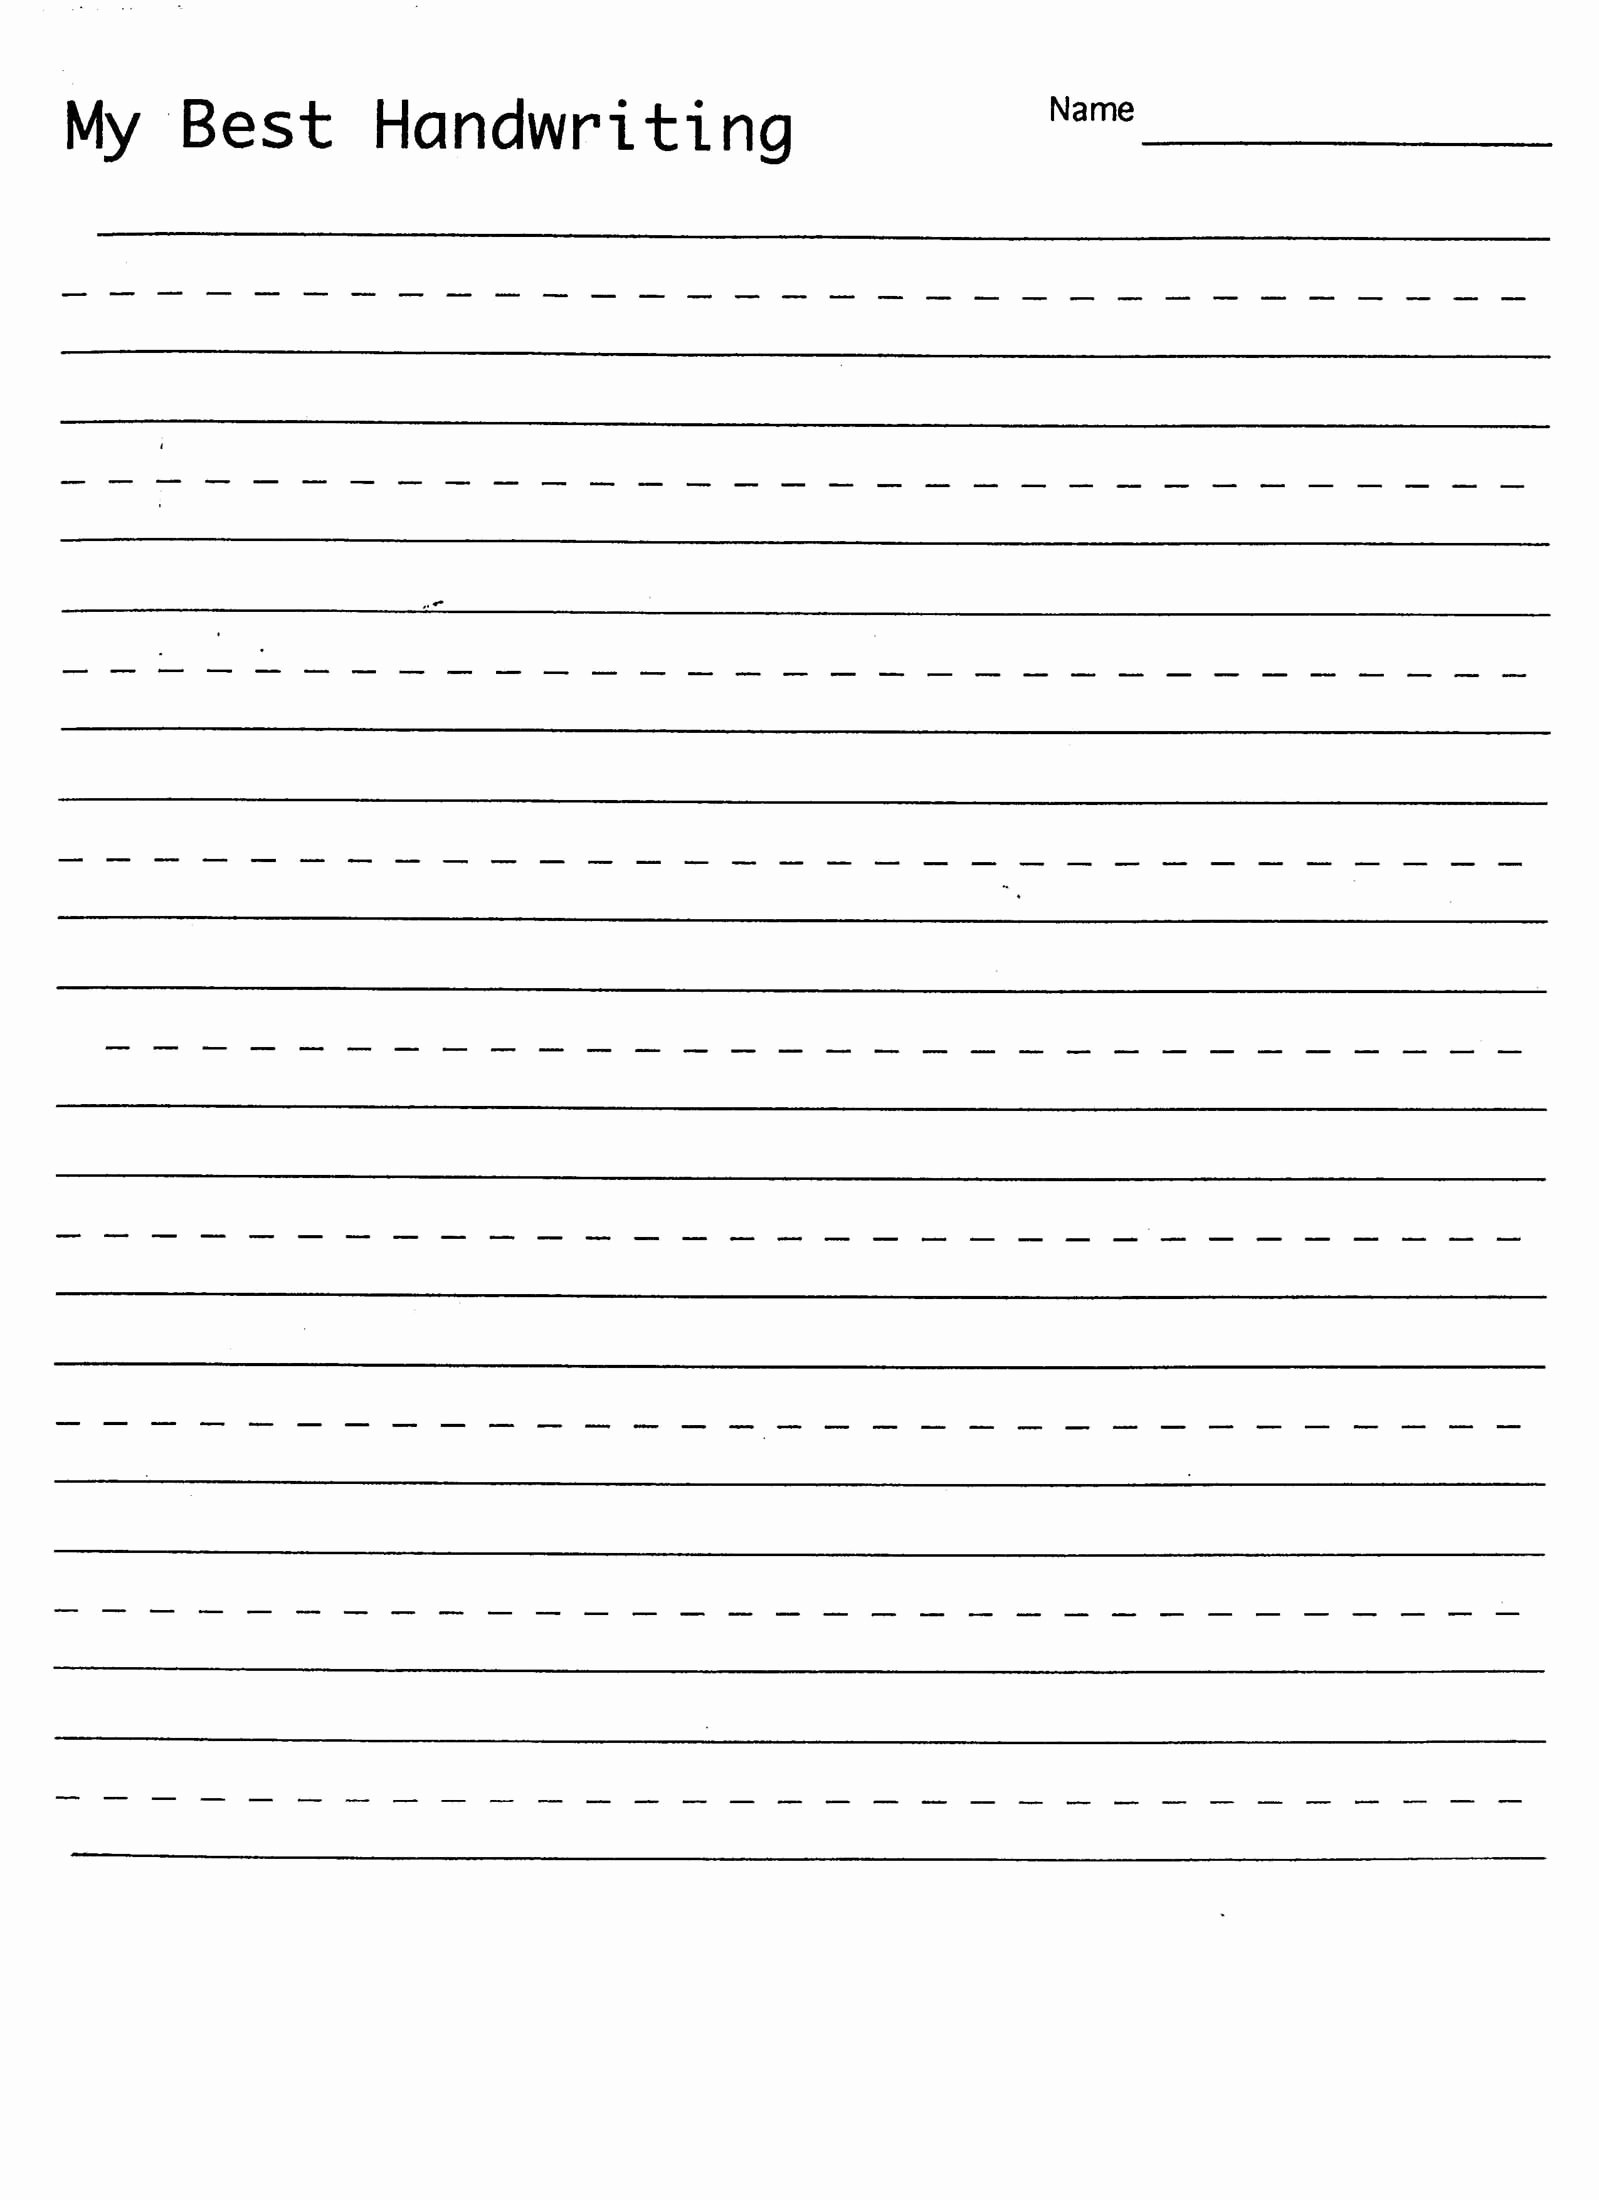 Practice Handwriting Worksheets for Preschoolers top Worksheets Practice Writing Worksheets Handwriting Sheets